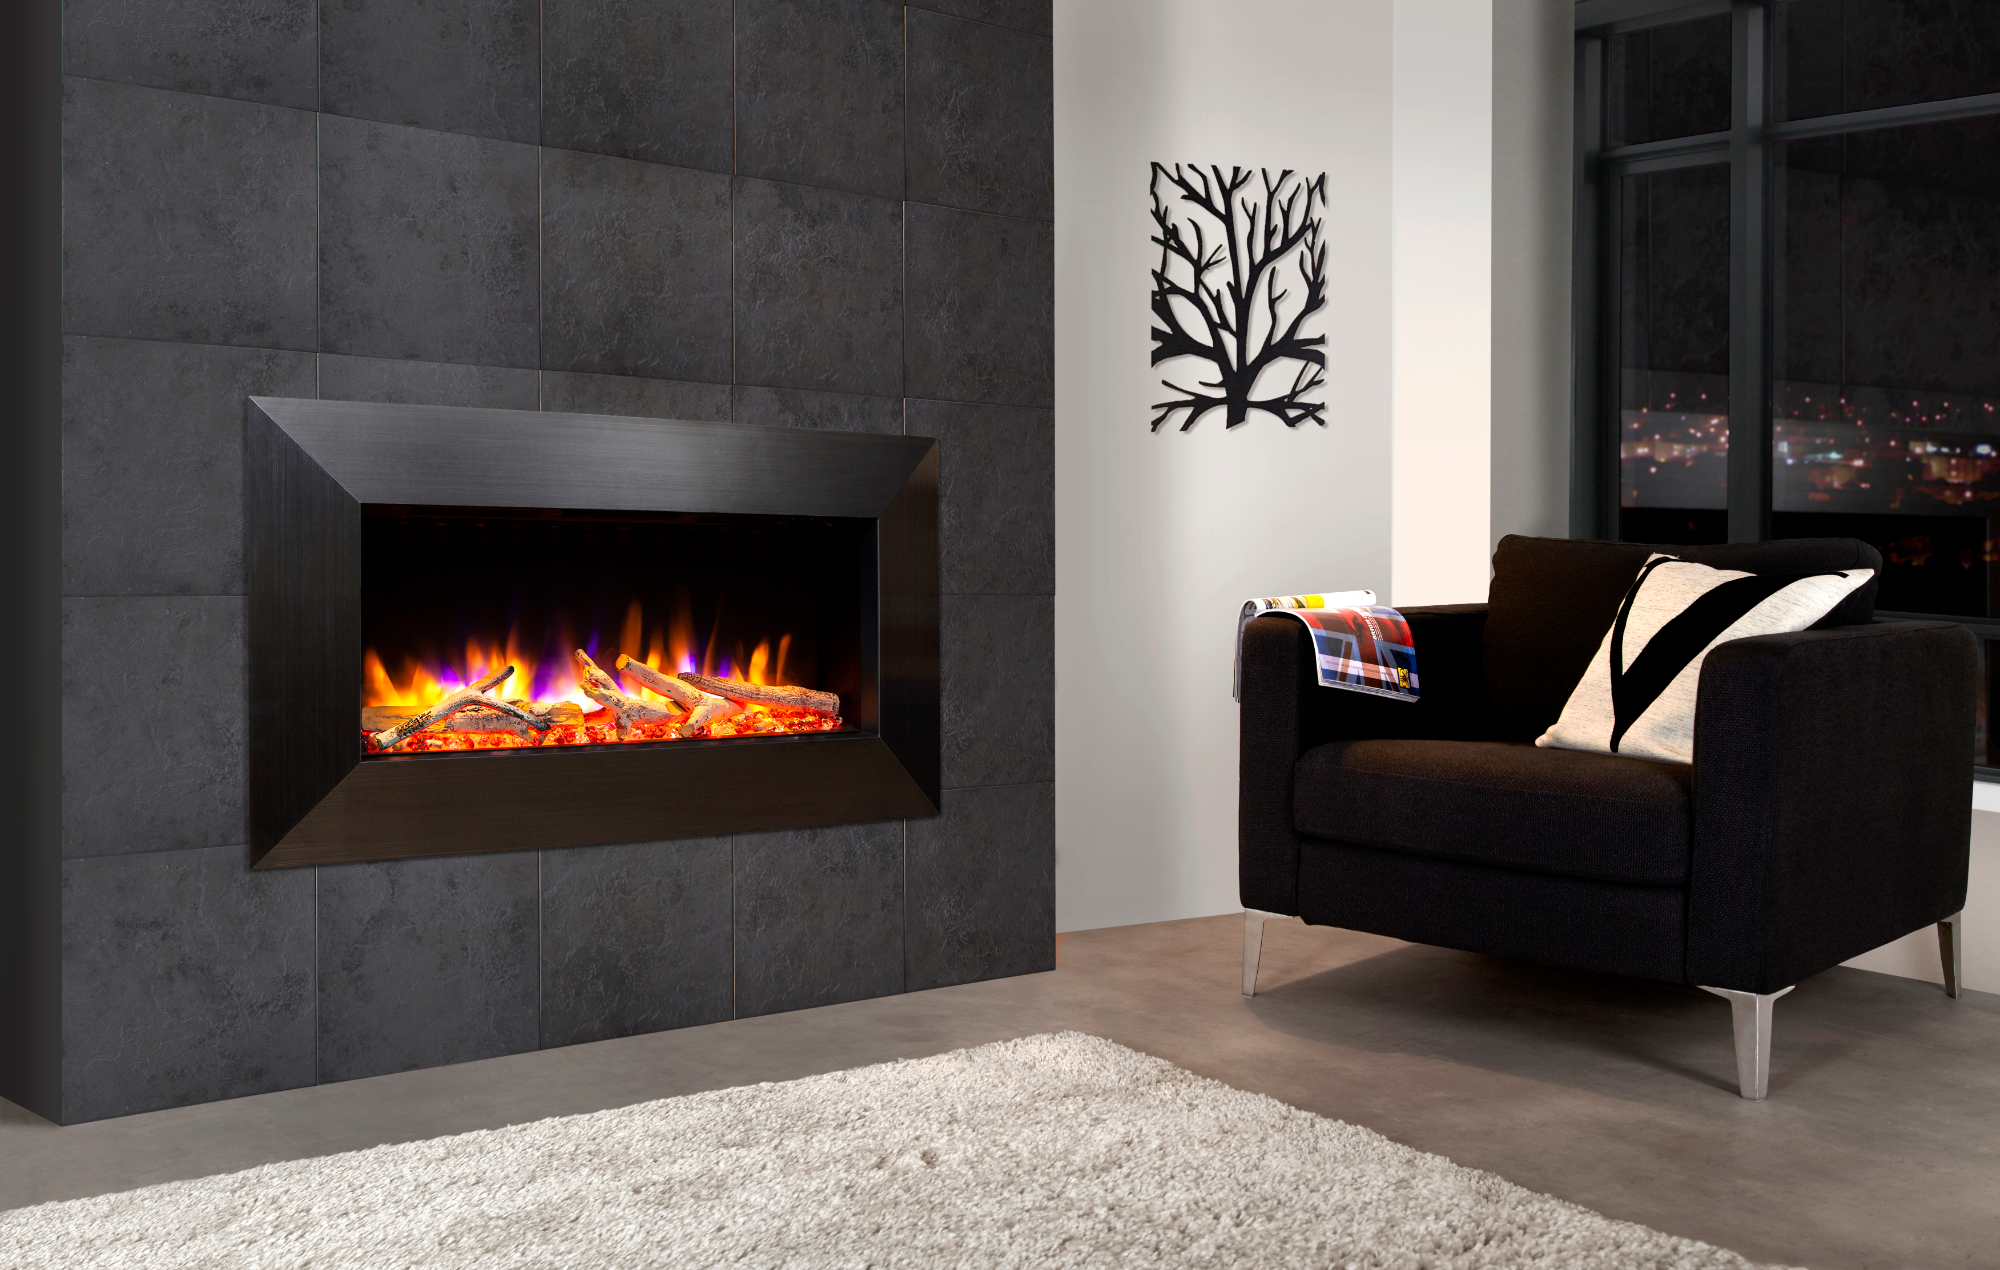 Celsi Electric Inset Fires available from Heating South West